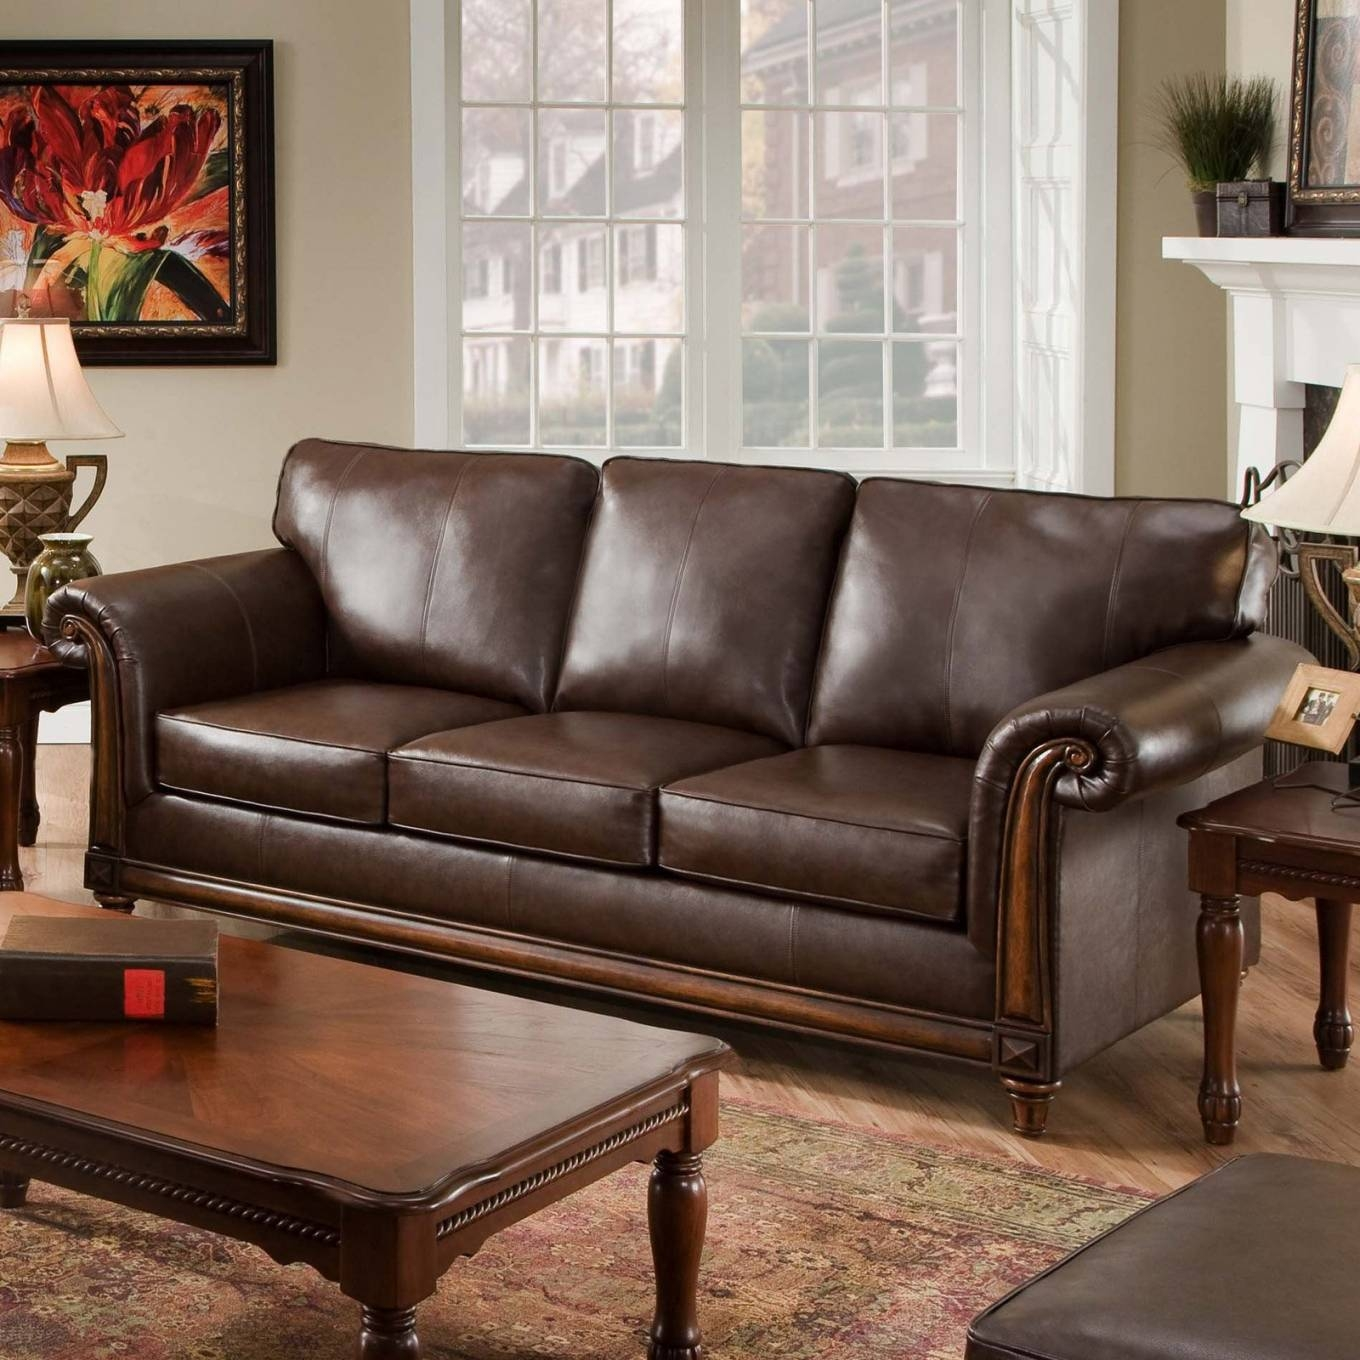 Leather Sectional Sofas San Diego – Slimsectionalsofas Pertaining To Sectional Sofa San Diego (View 16 of 30)